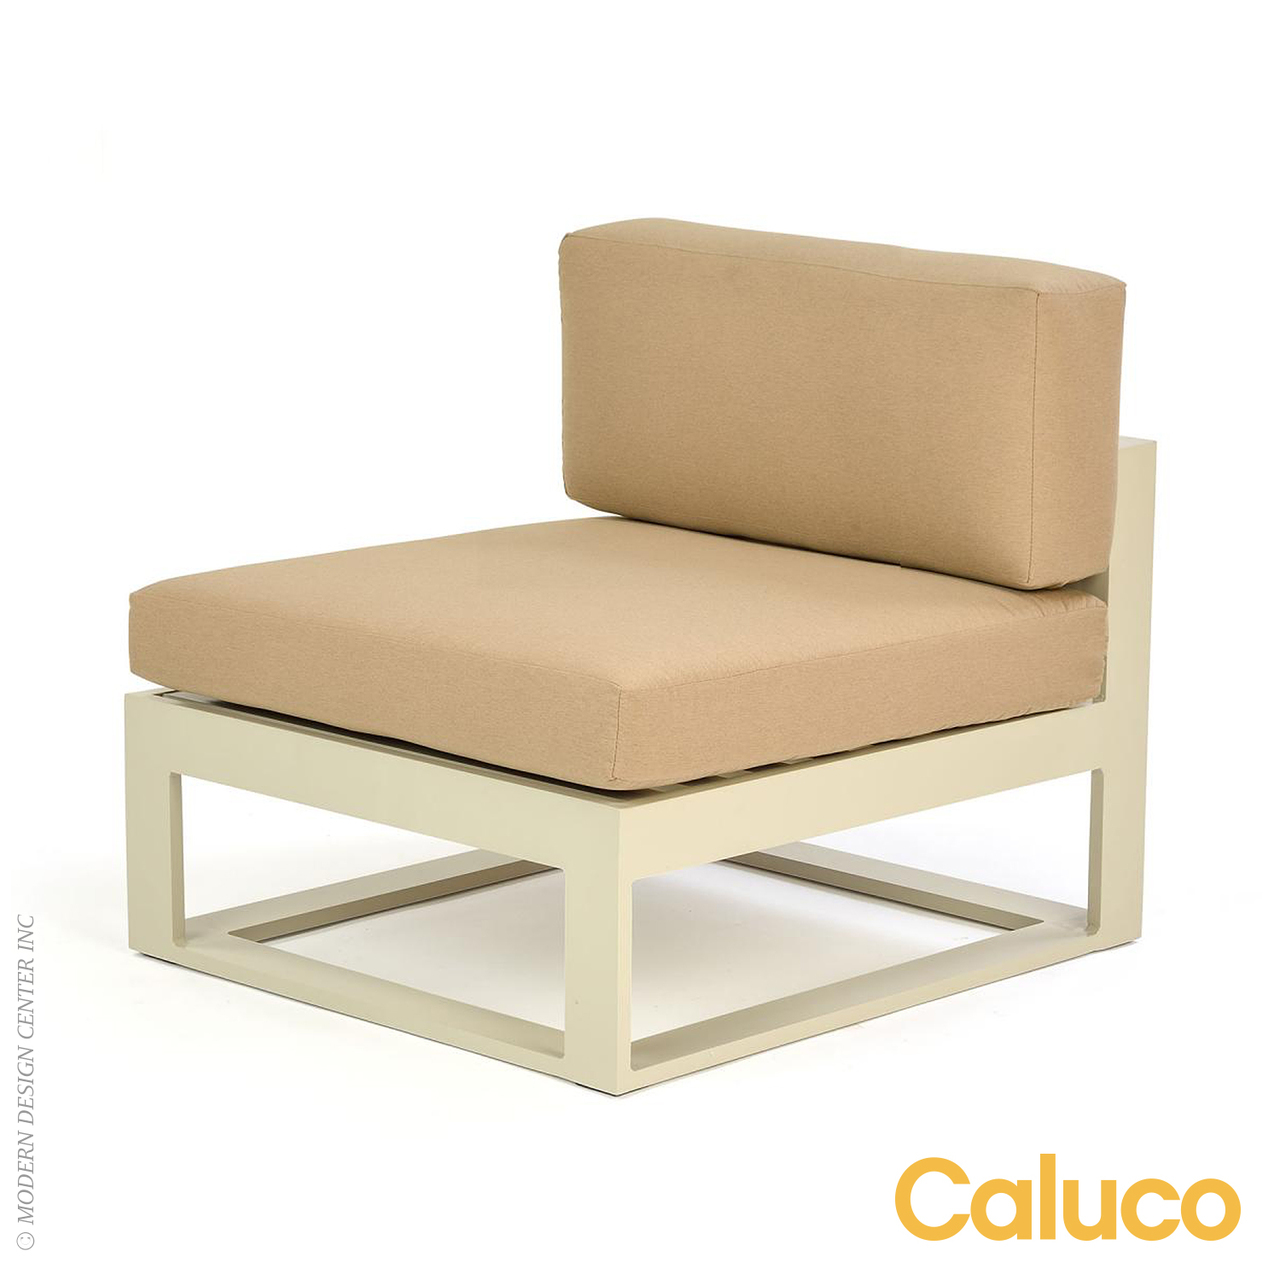 Space Sectional Middle Caluco Patio Furniture Metropolitandecor